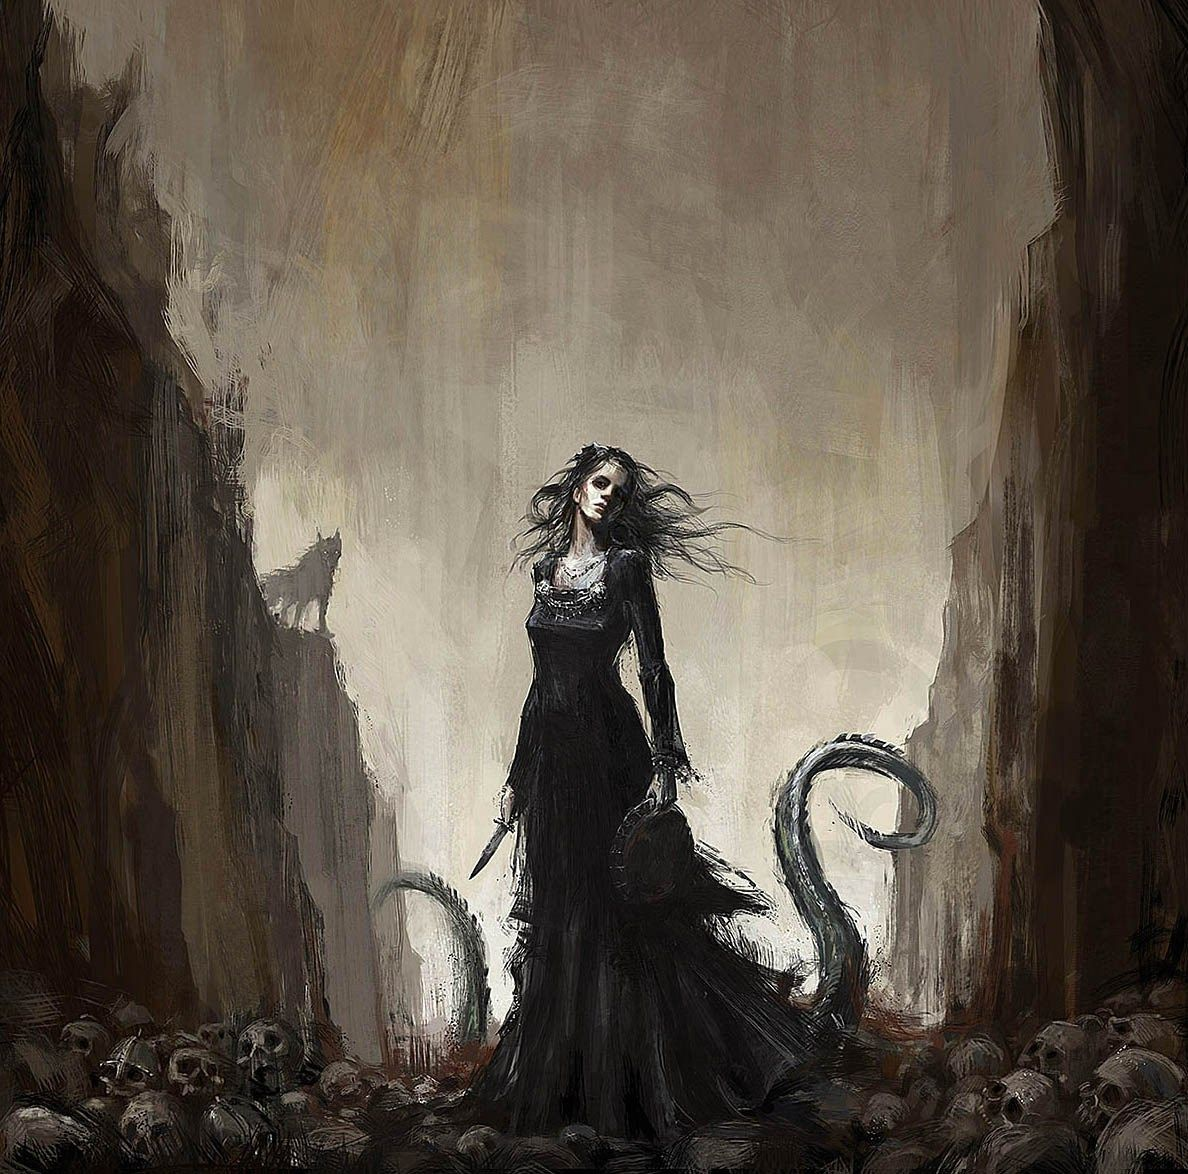 Black Moon Lilith: Peering into the Darkness on the Blood MoonEclipse